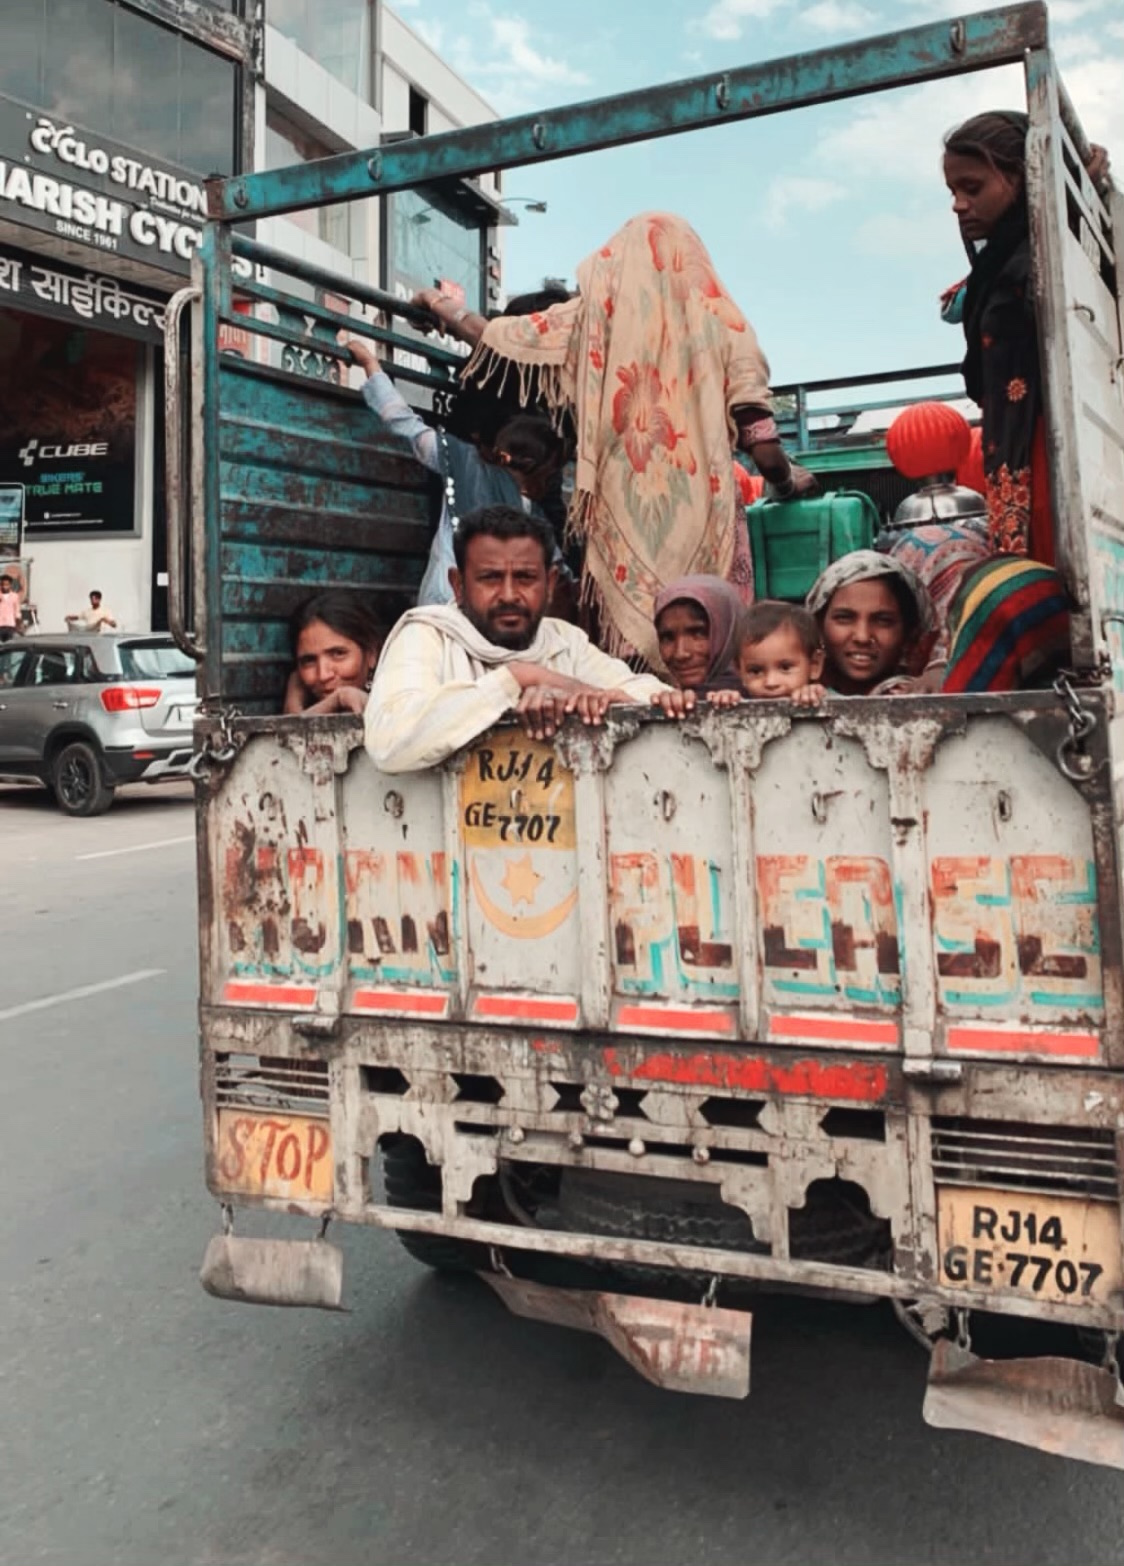 honk ok please, local family hitches a ride in the back of a truck in india